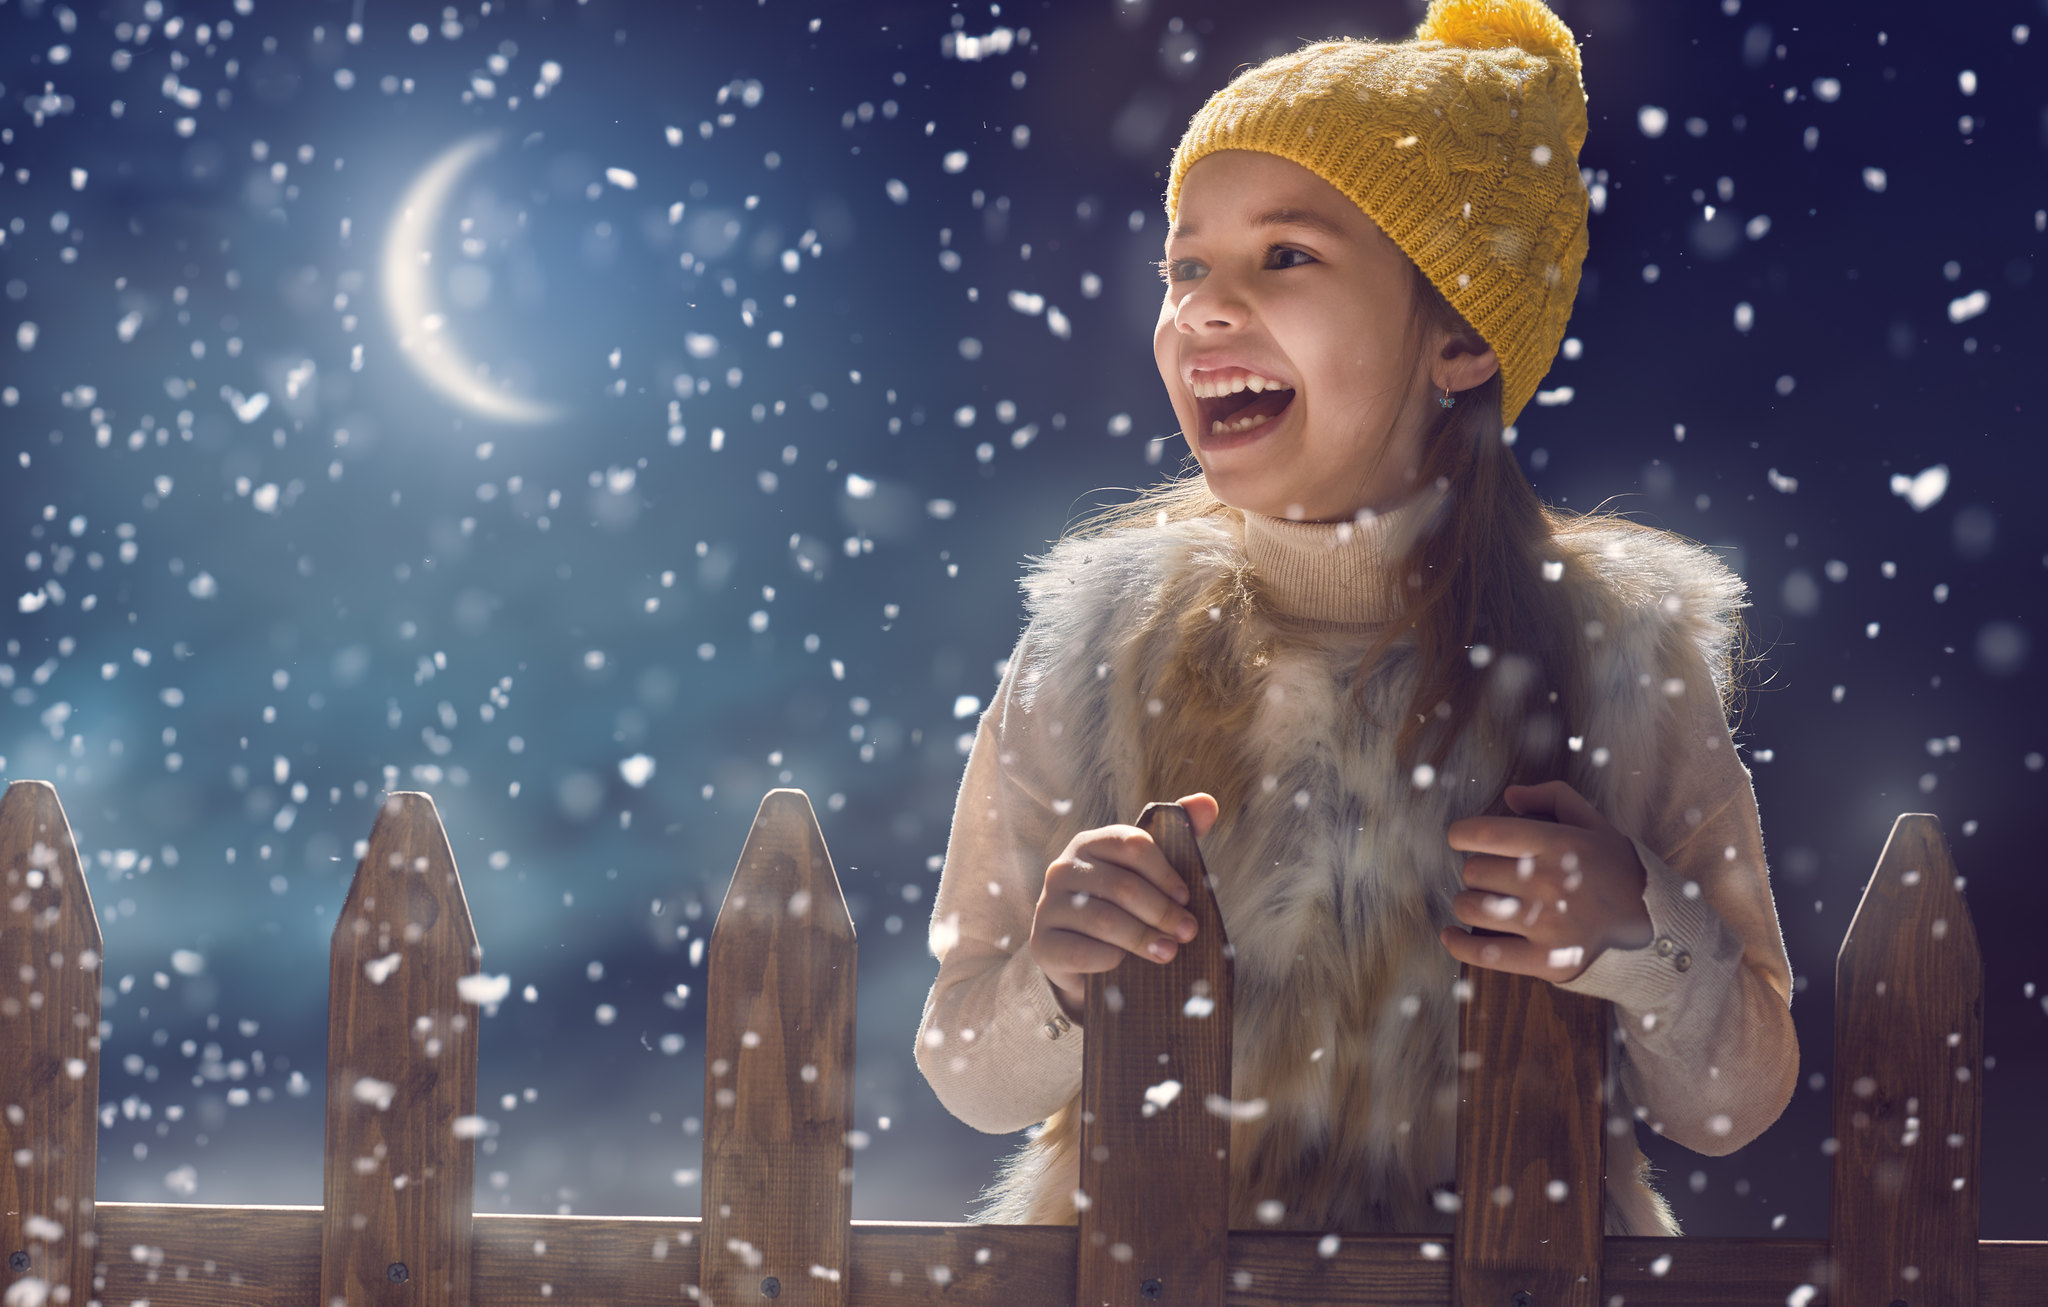 girl laughing in the snow at night